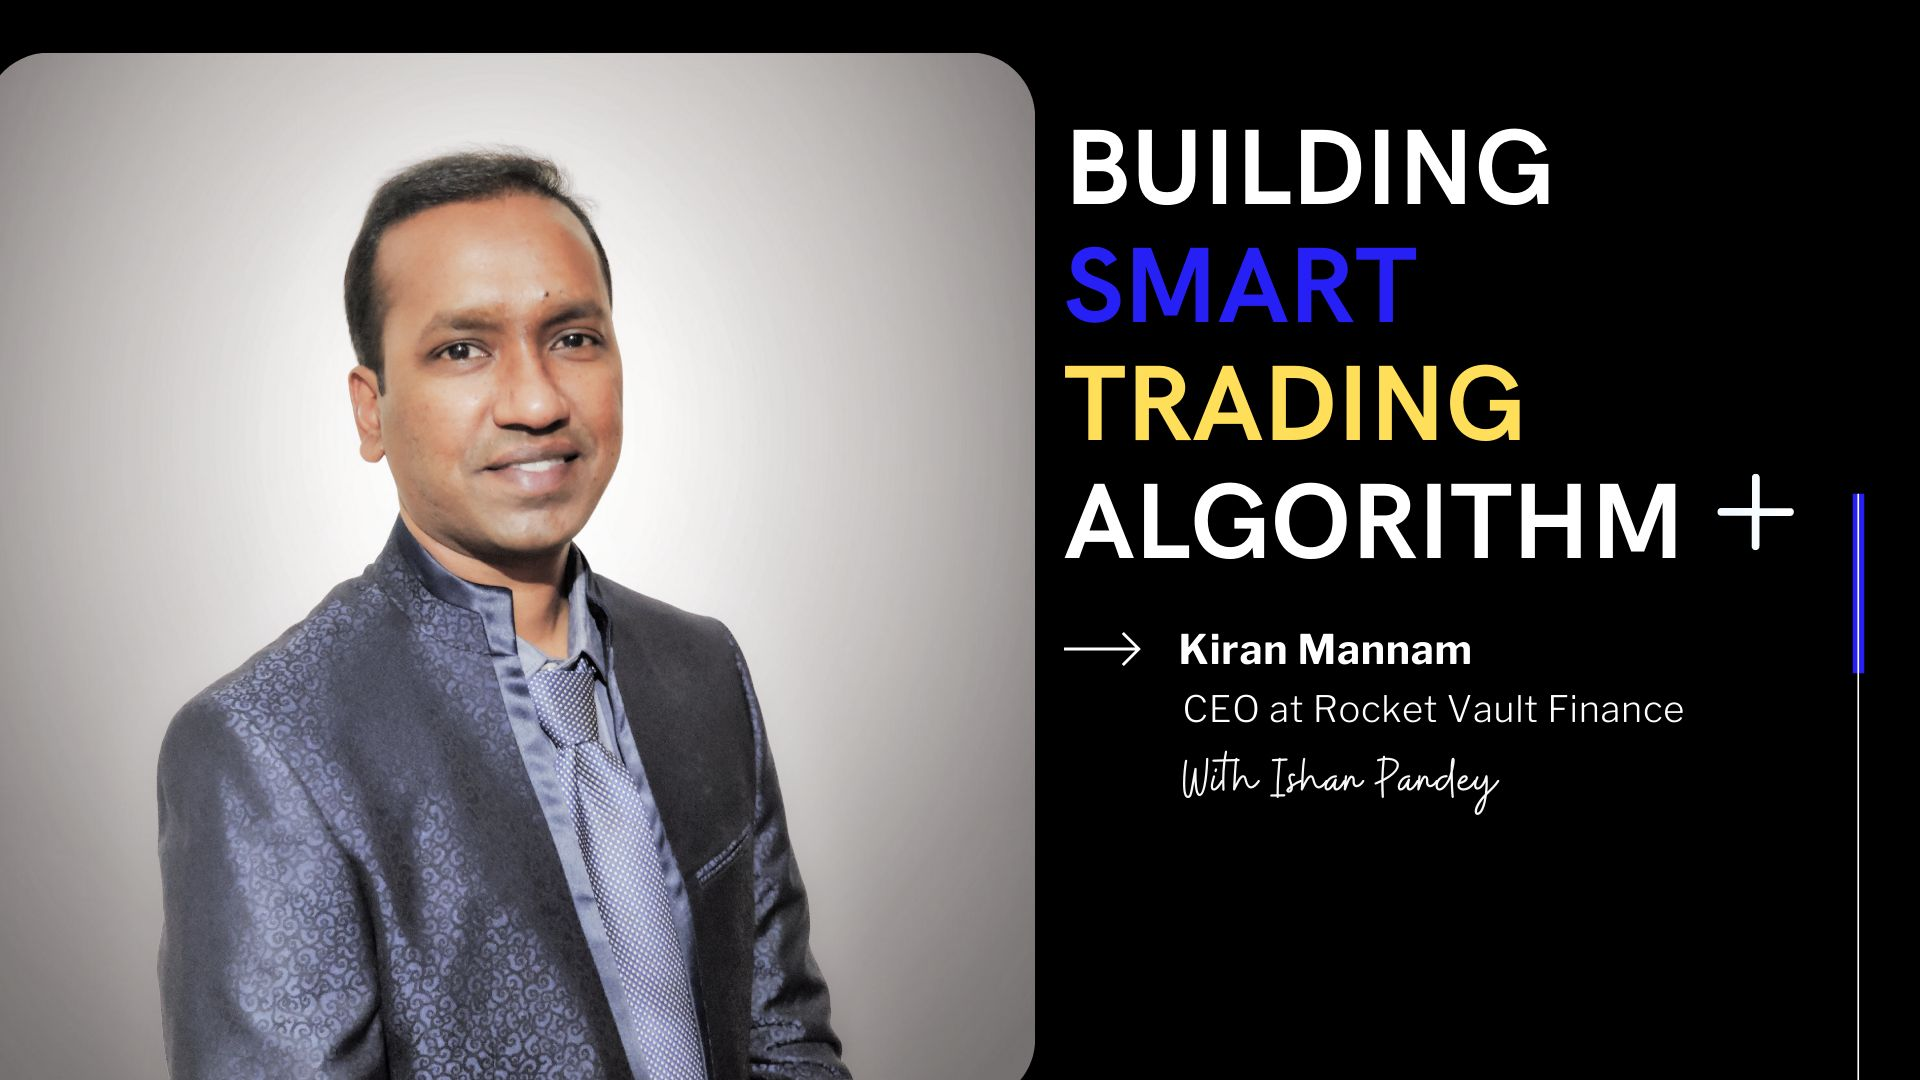 /building-ai-based-trading-algorithms-an-interview-with-kiran-mannam-ceo-at-rocket-vault-finance-te28338r feature image